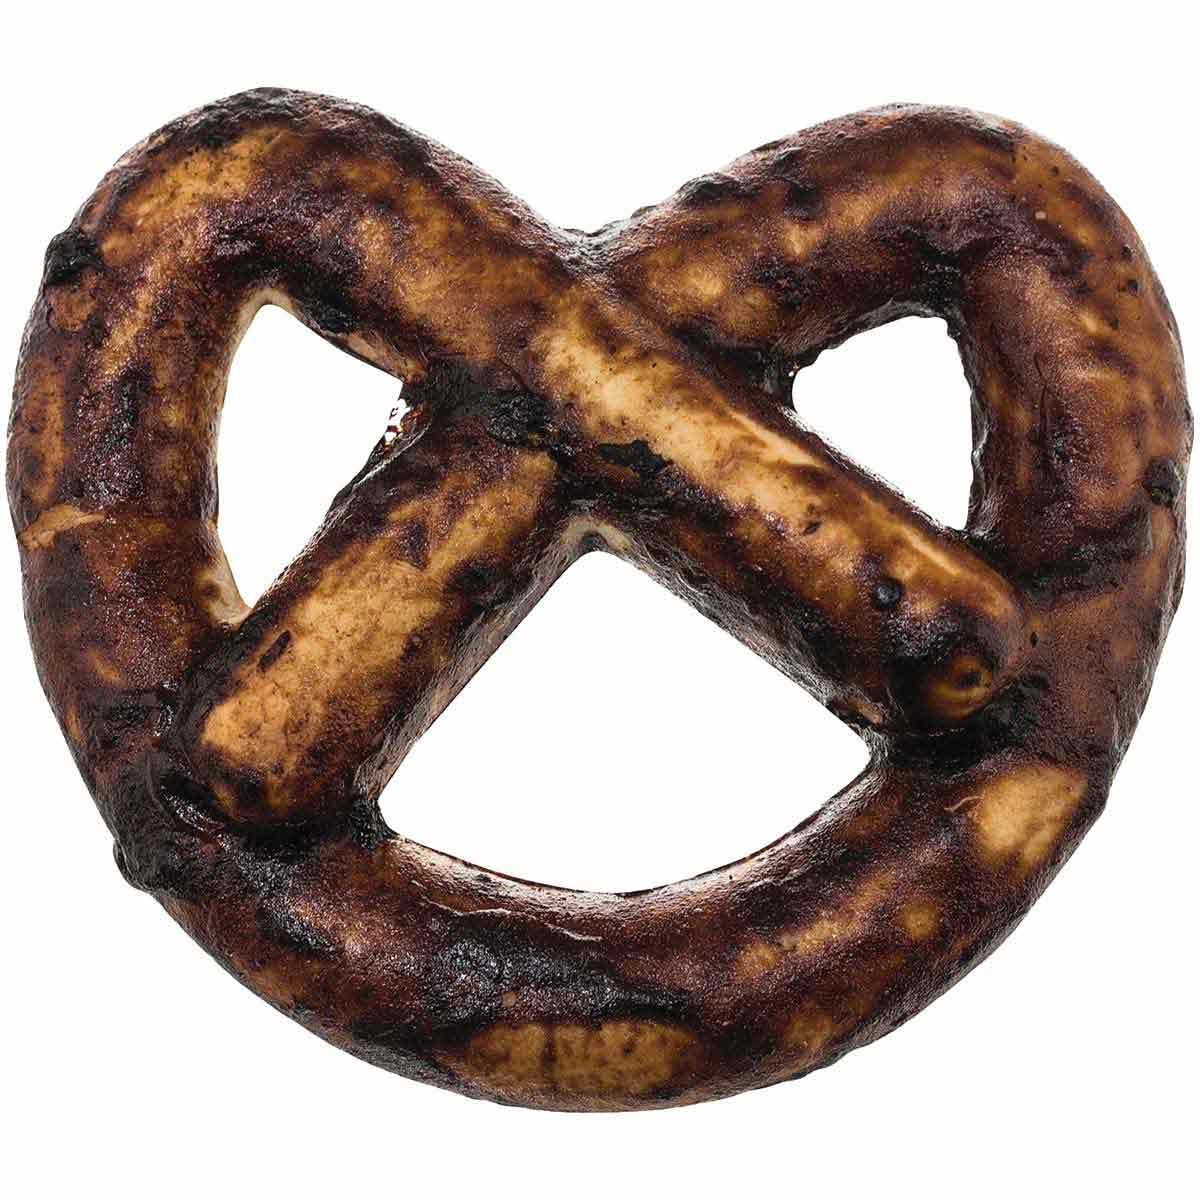 RedBarn Chew-A-Bulls Mini Pretzel Beef Treat for Dogs - 3.25 inch